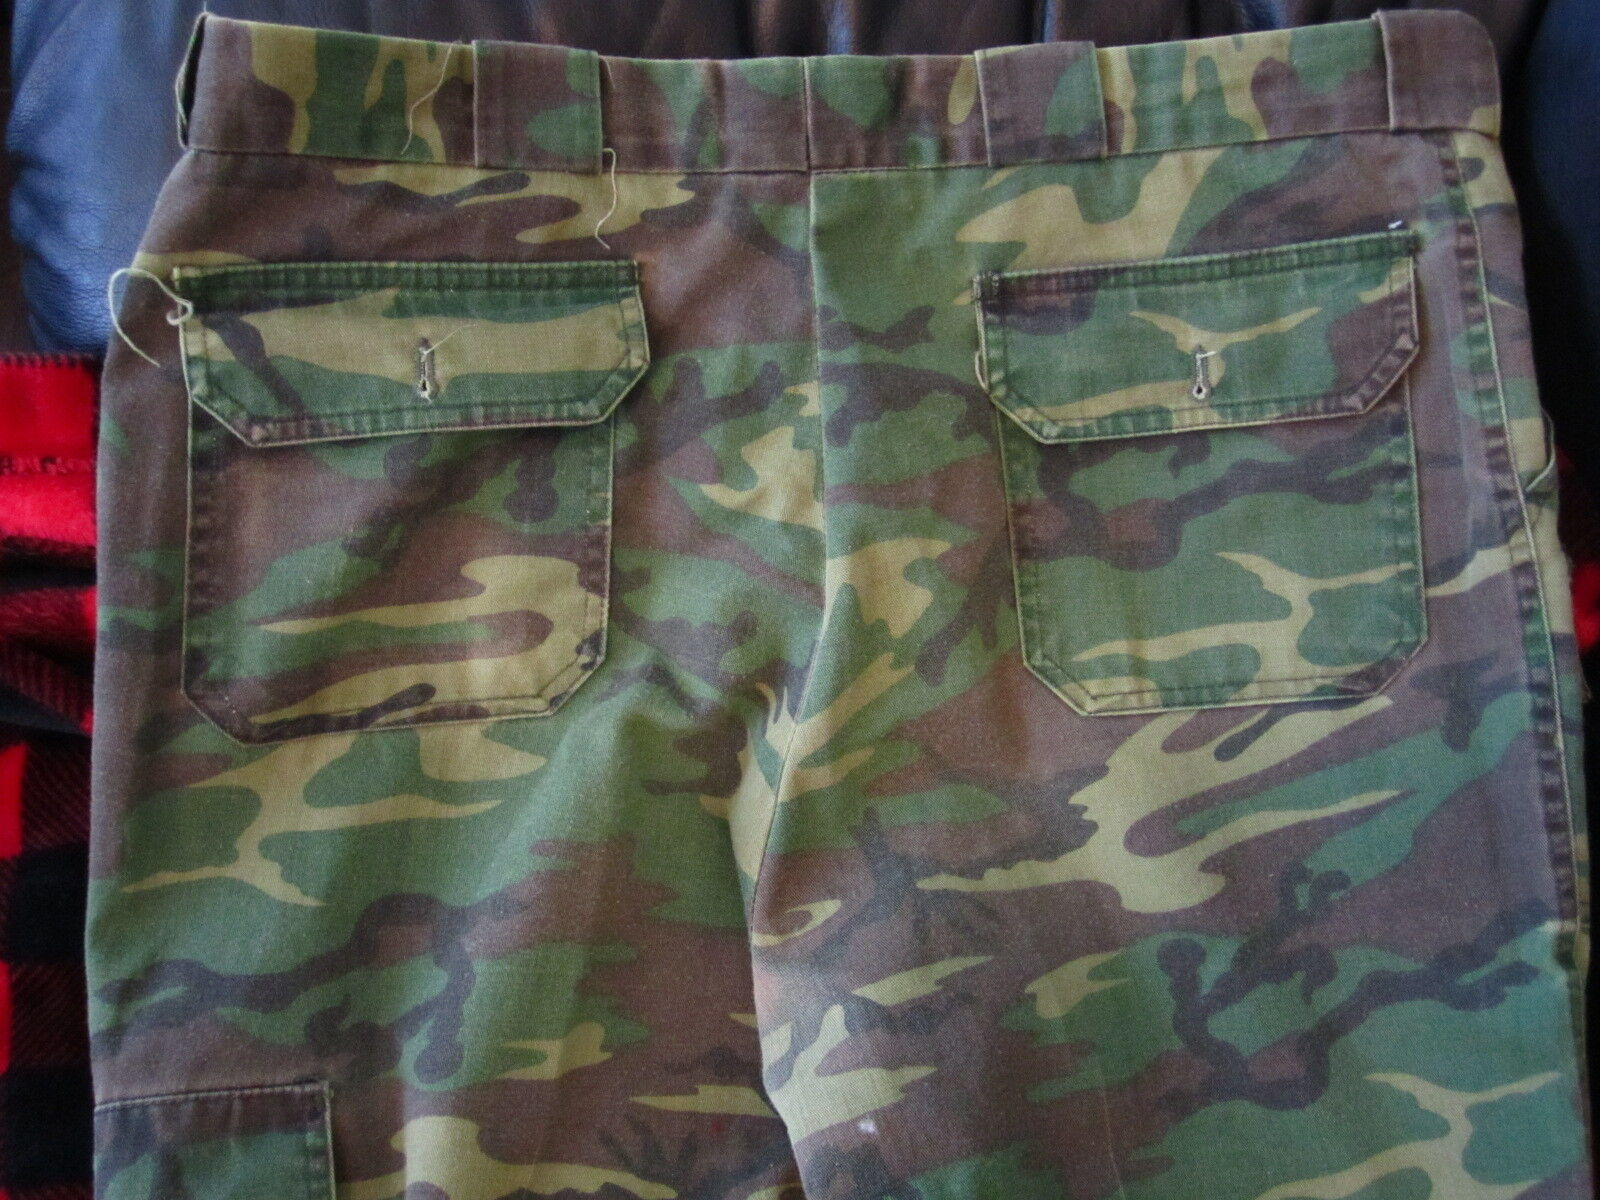 Vintage Cabelas  Upland Tradition  Size 34  Camoflage  Thorn Proof